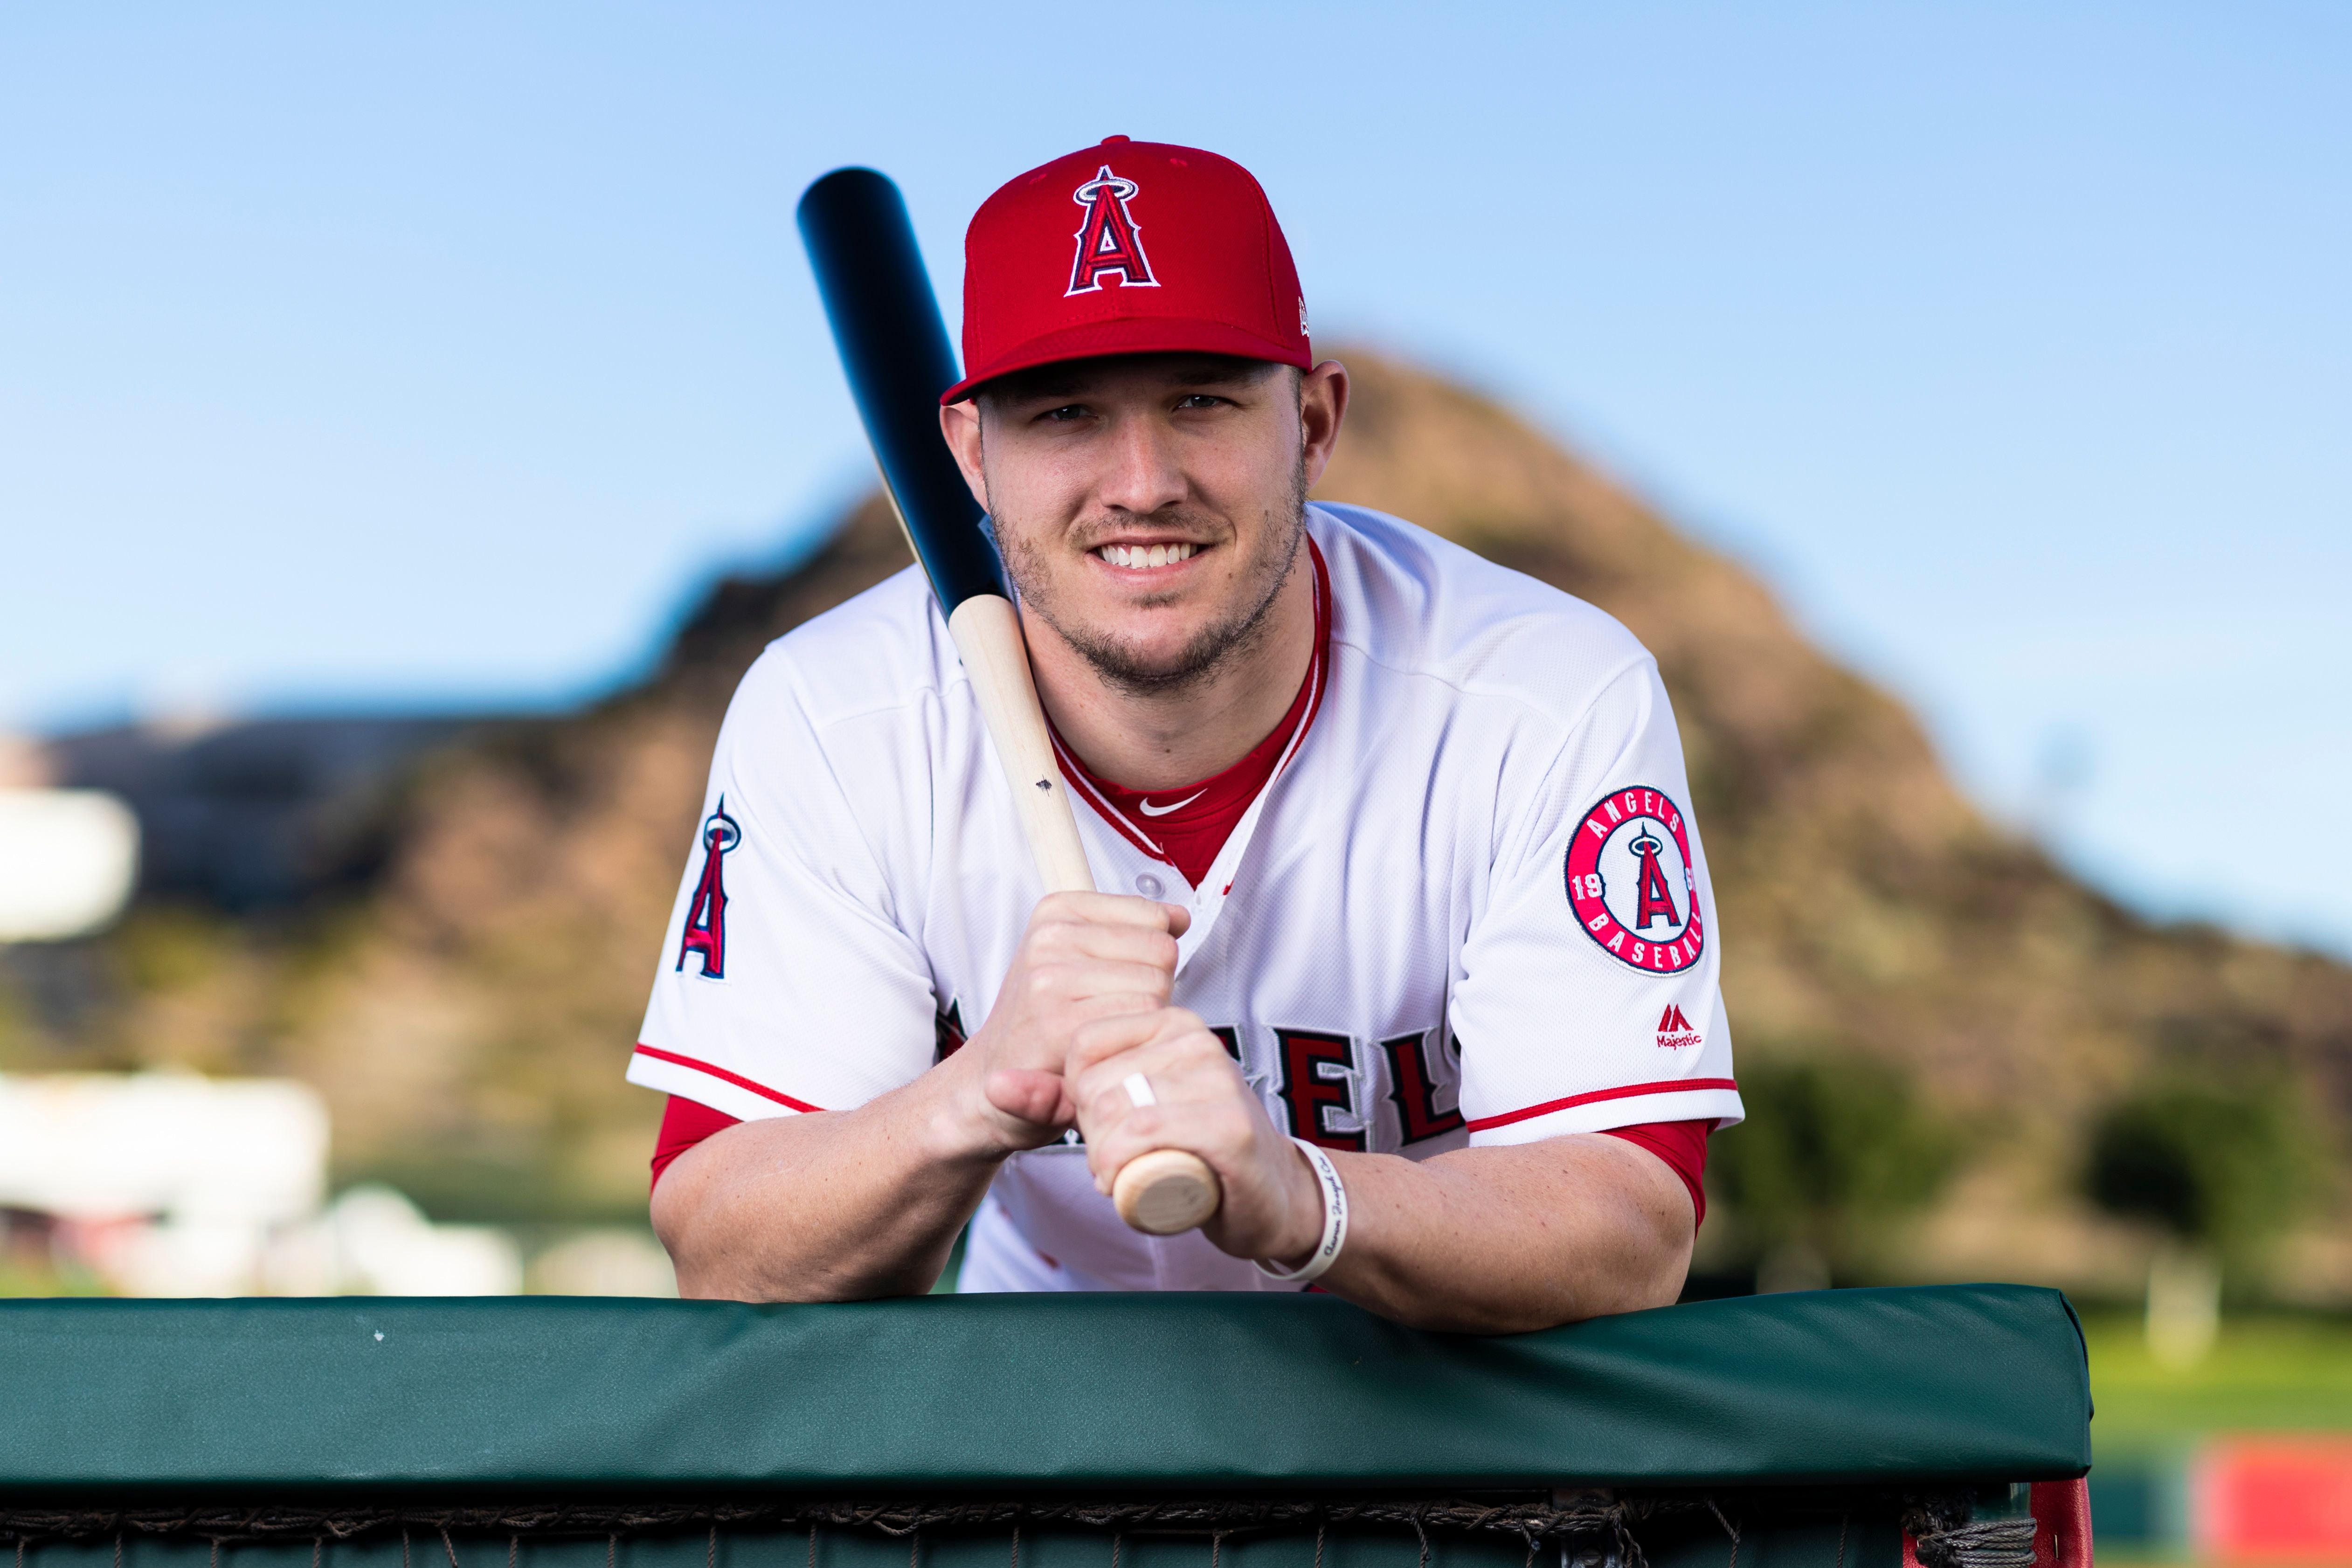 Los Angeles Angels outfielder Mike Trout (27) poses for a portrait on Tuesday, Feb. 19, 2019 | Photo: Getty Images